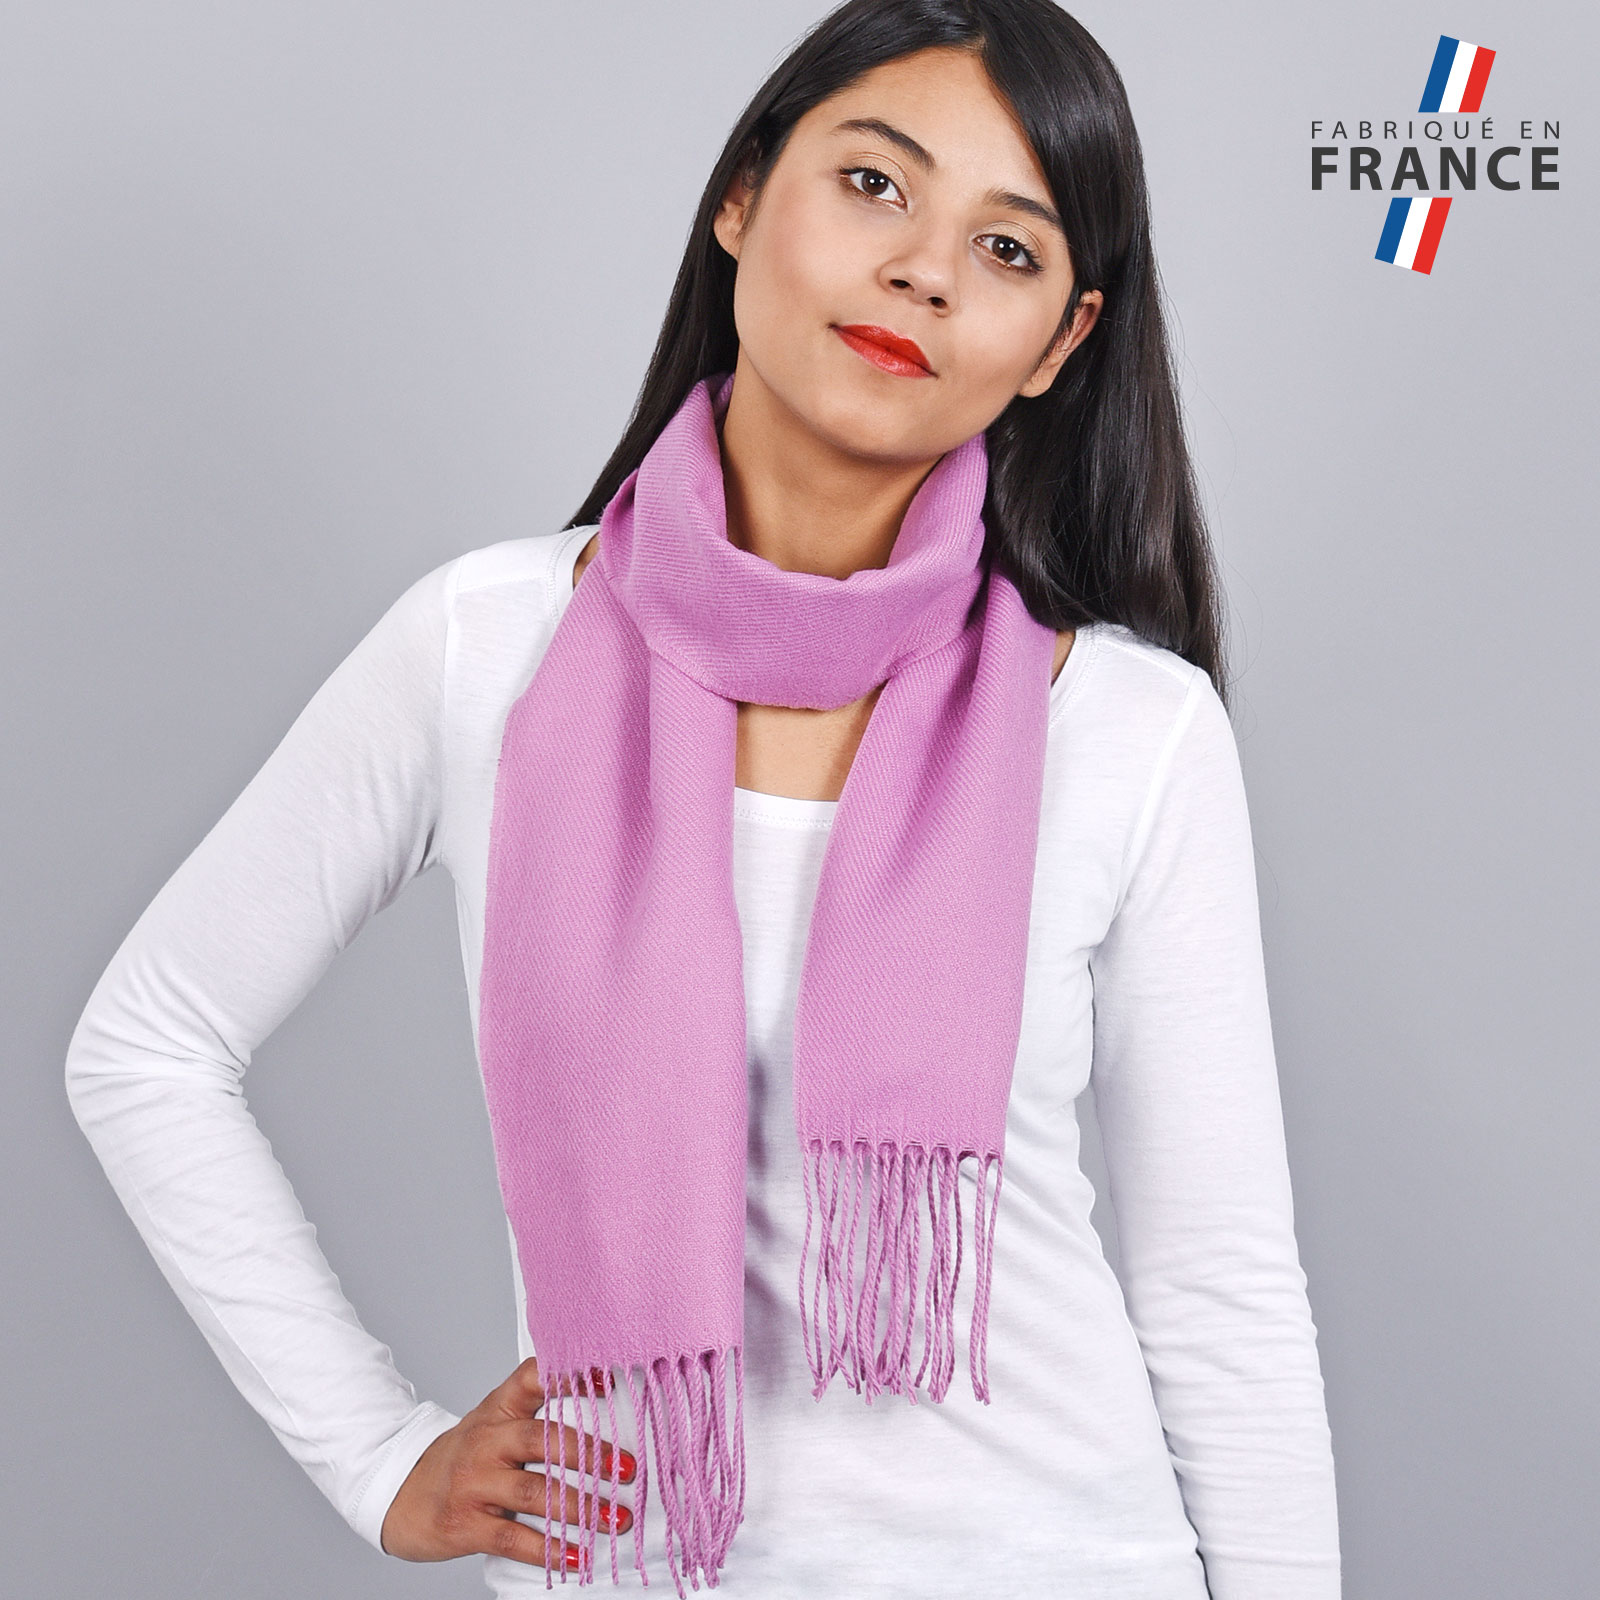 AT-03433-VF16-LB_FR-echarpe-franges-rose-femme-fabrication-francaise